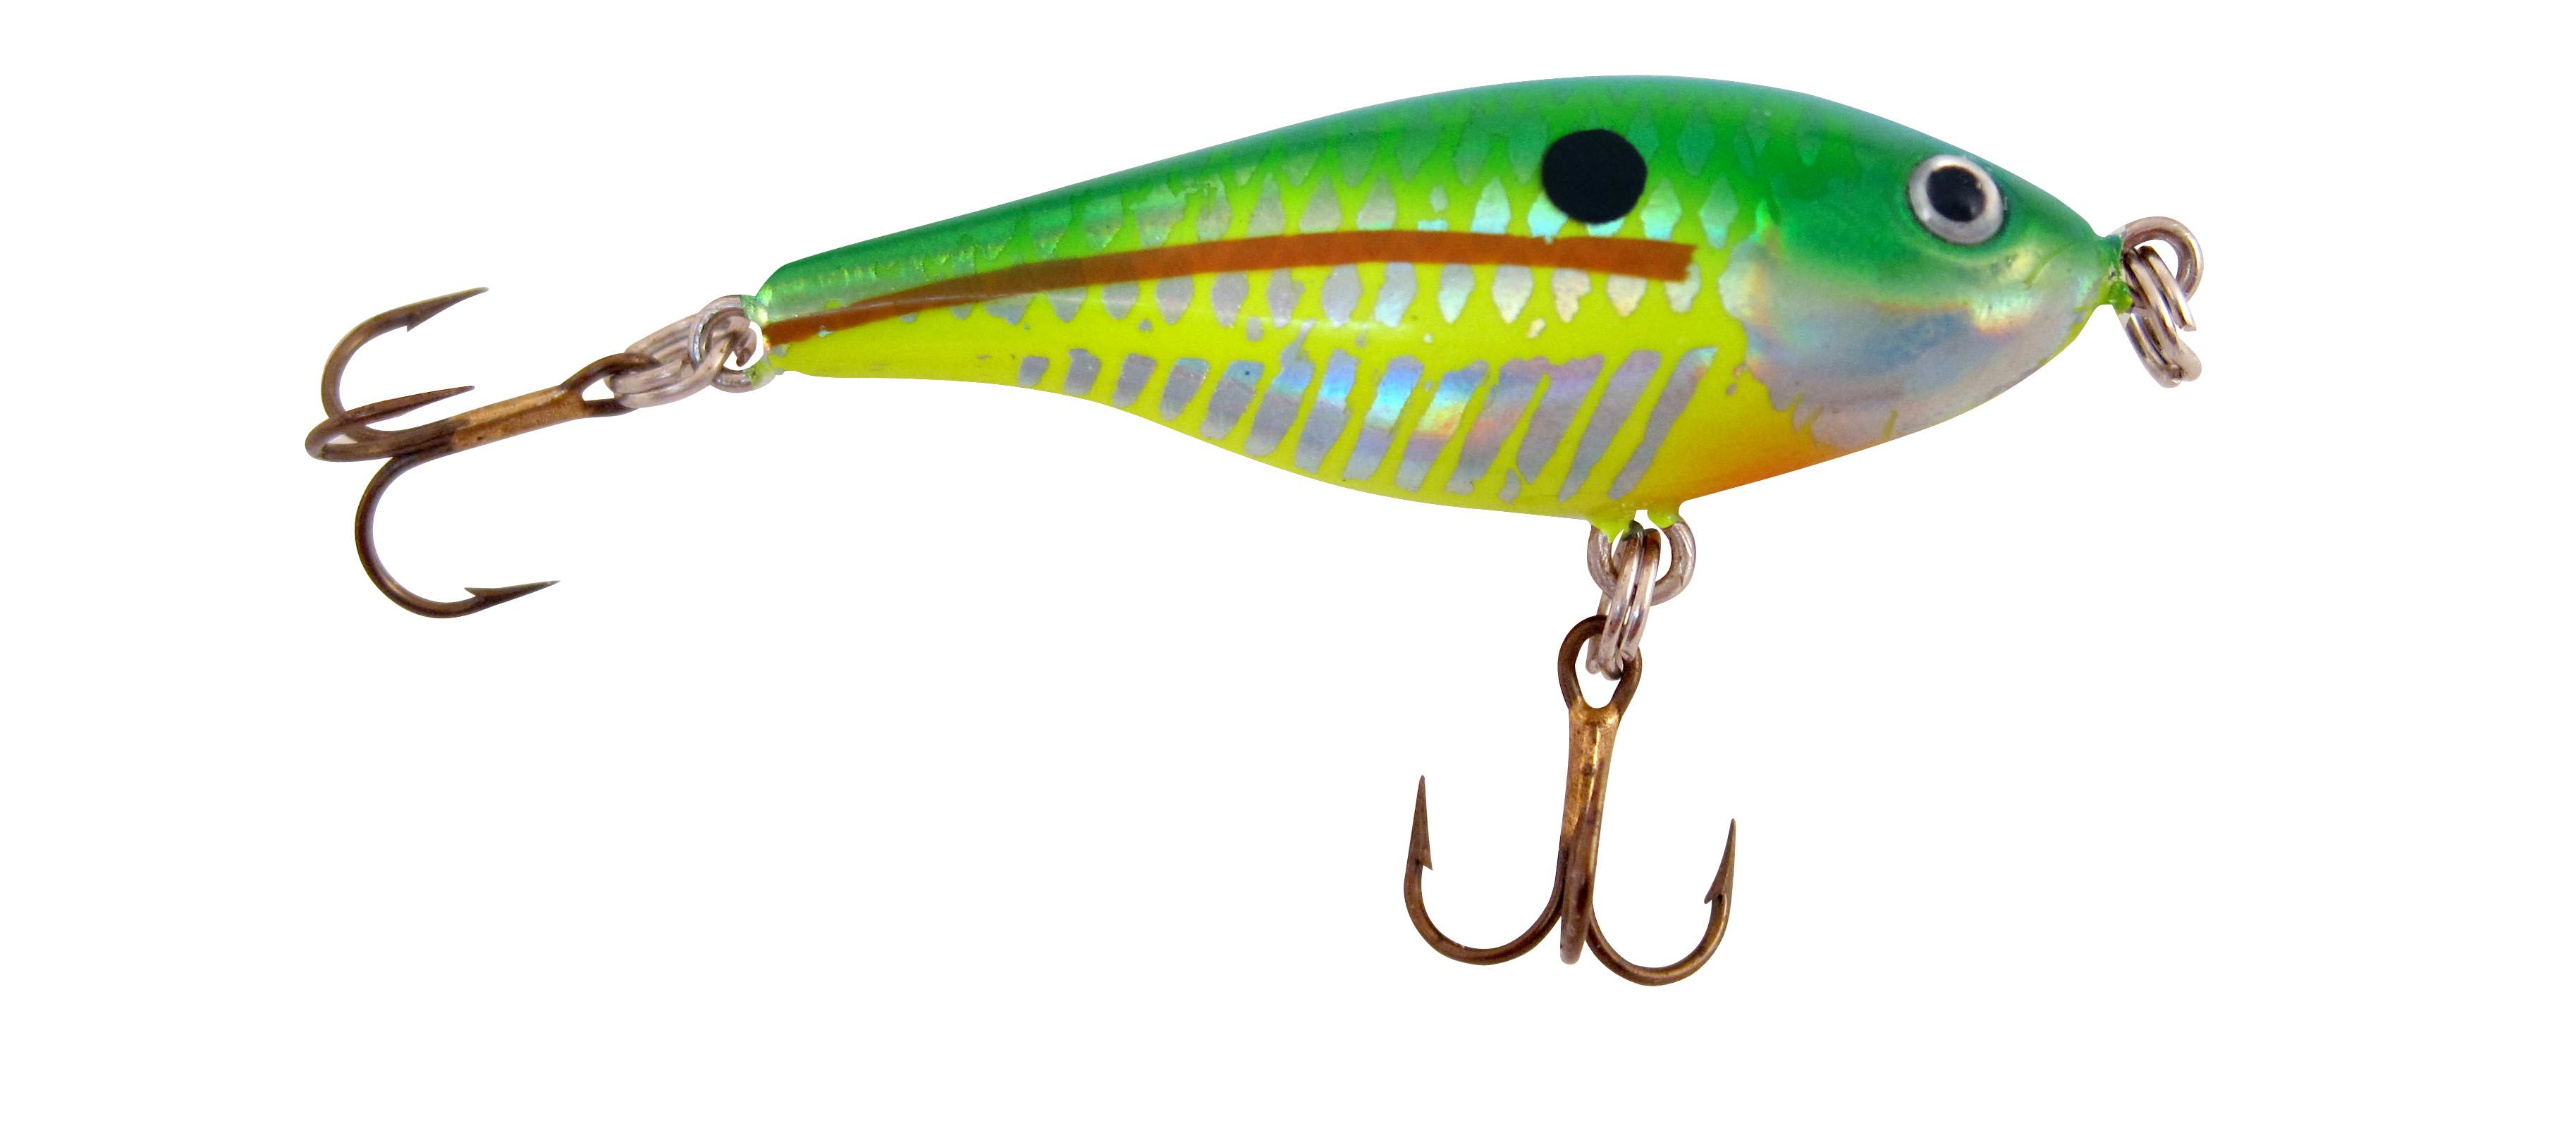 Rebel raider citrus shad fishing sinking for Amazon fishing lures